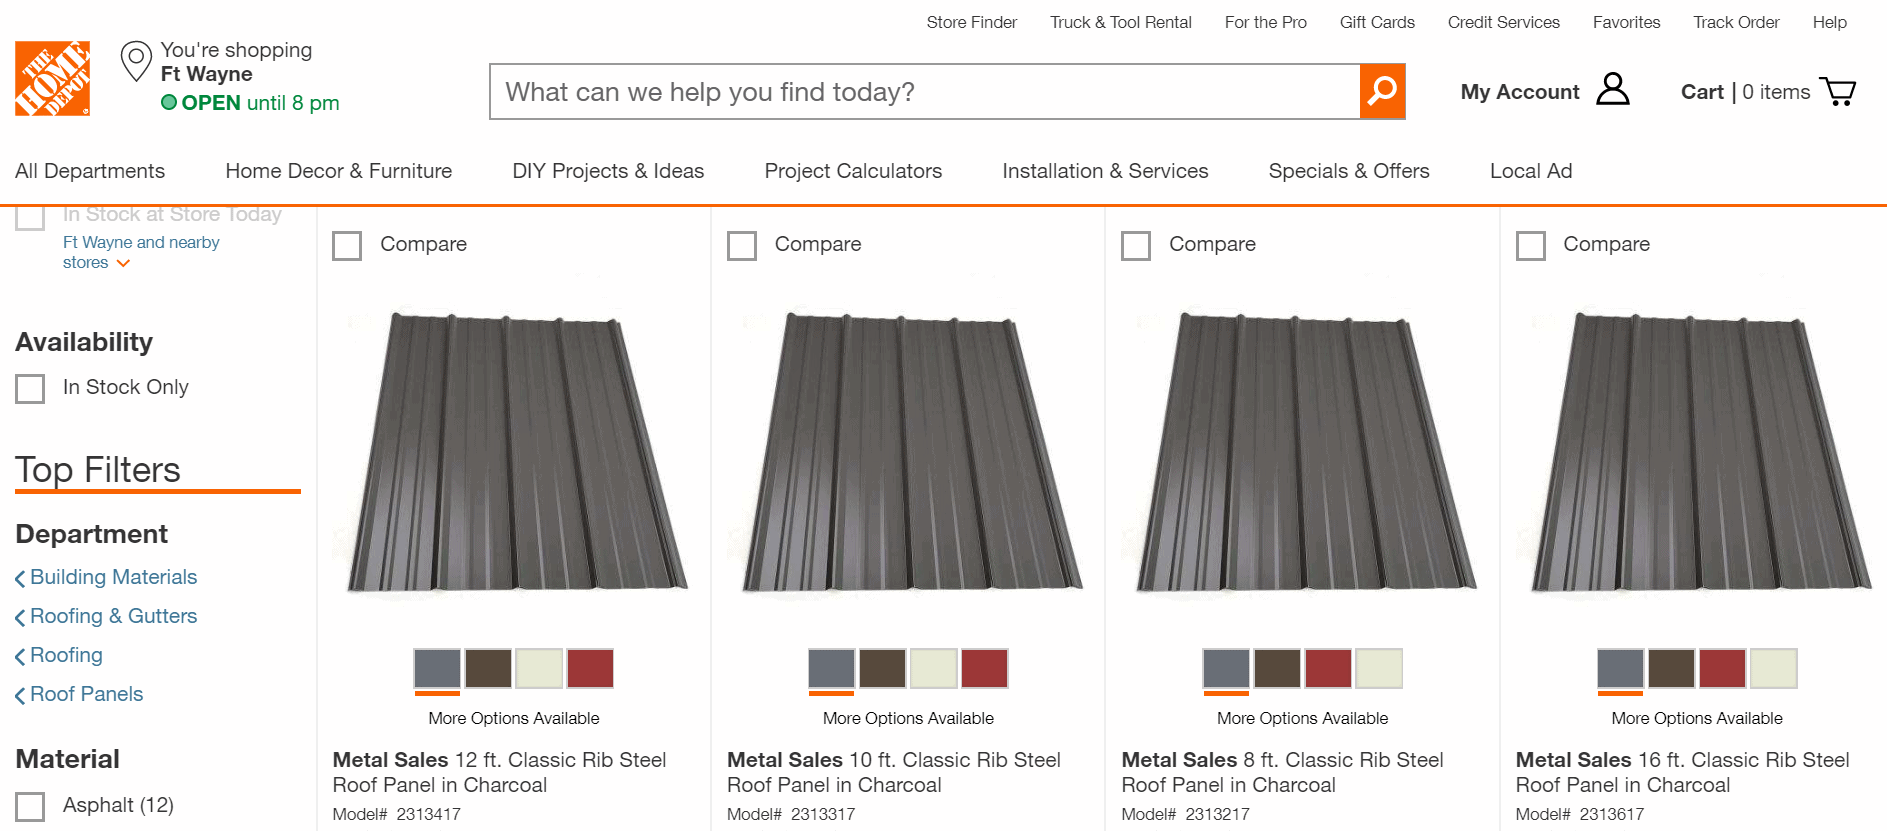 Pre-formed panel roofing is one type of metal roofing that some homeowners in Fort Wayne, IN choose to use.